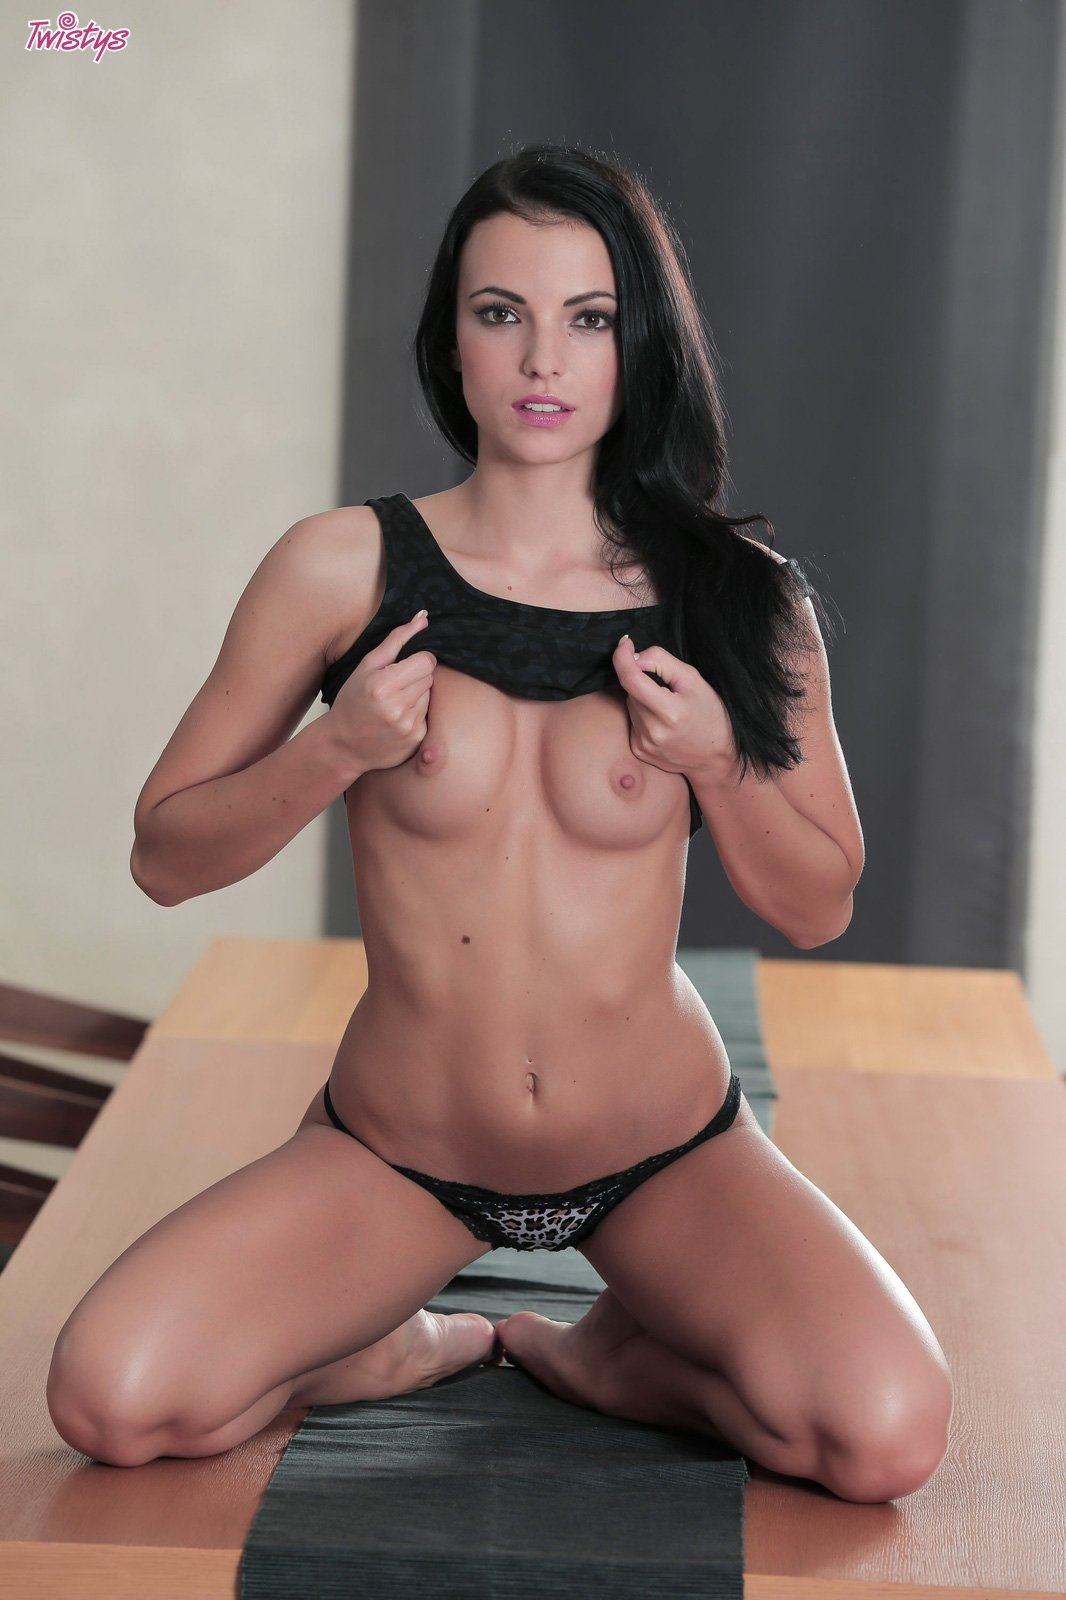 Hottest pornstar in the world there